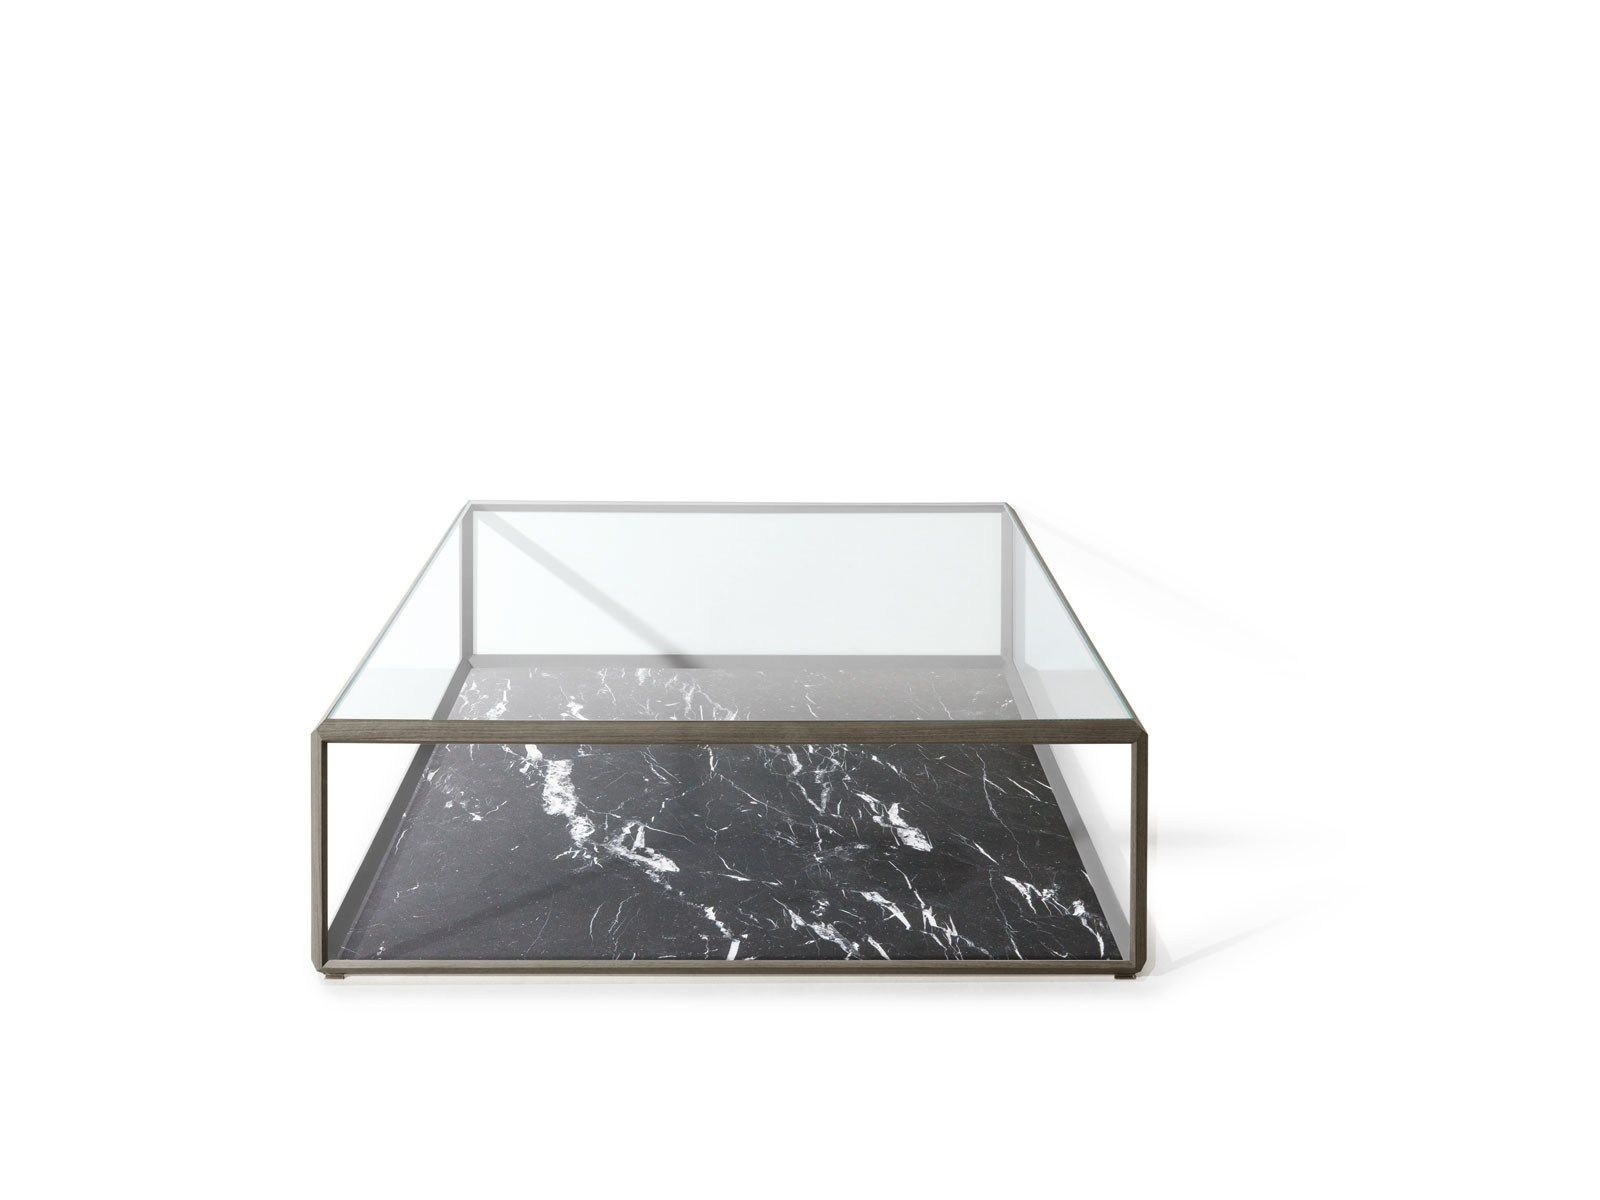 45 coffee table by moltenic design ron gilad coffee table design 45 coffee table by moltenic design ron gilad geotapseo Image collections